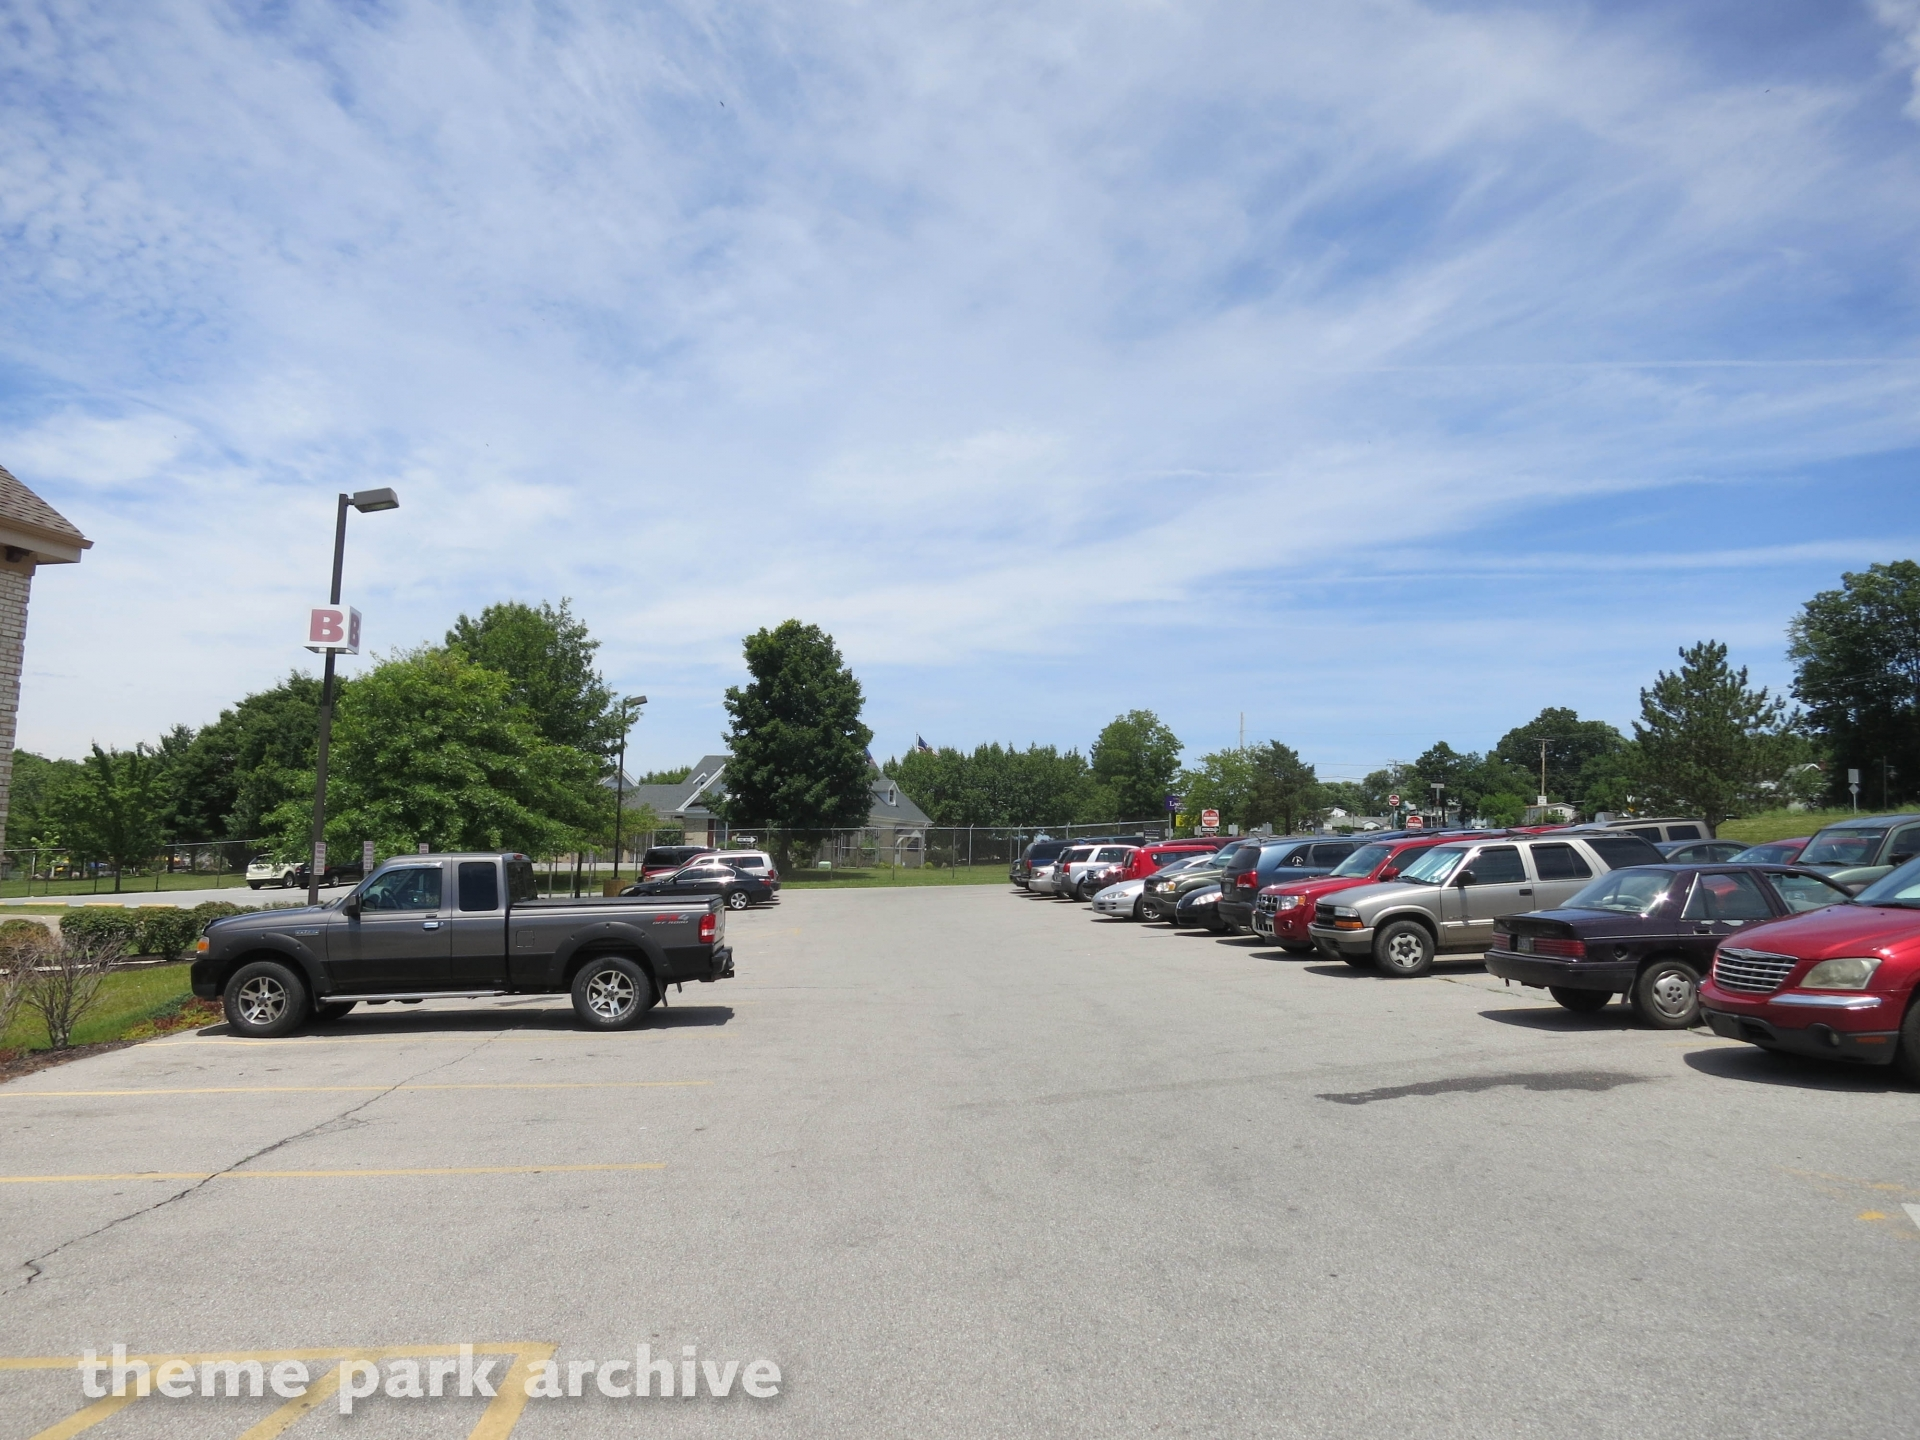 Parking at Lakemont Park